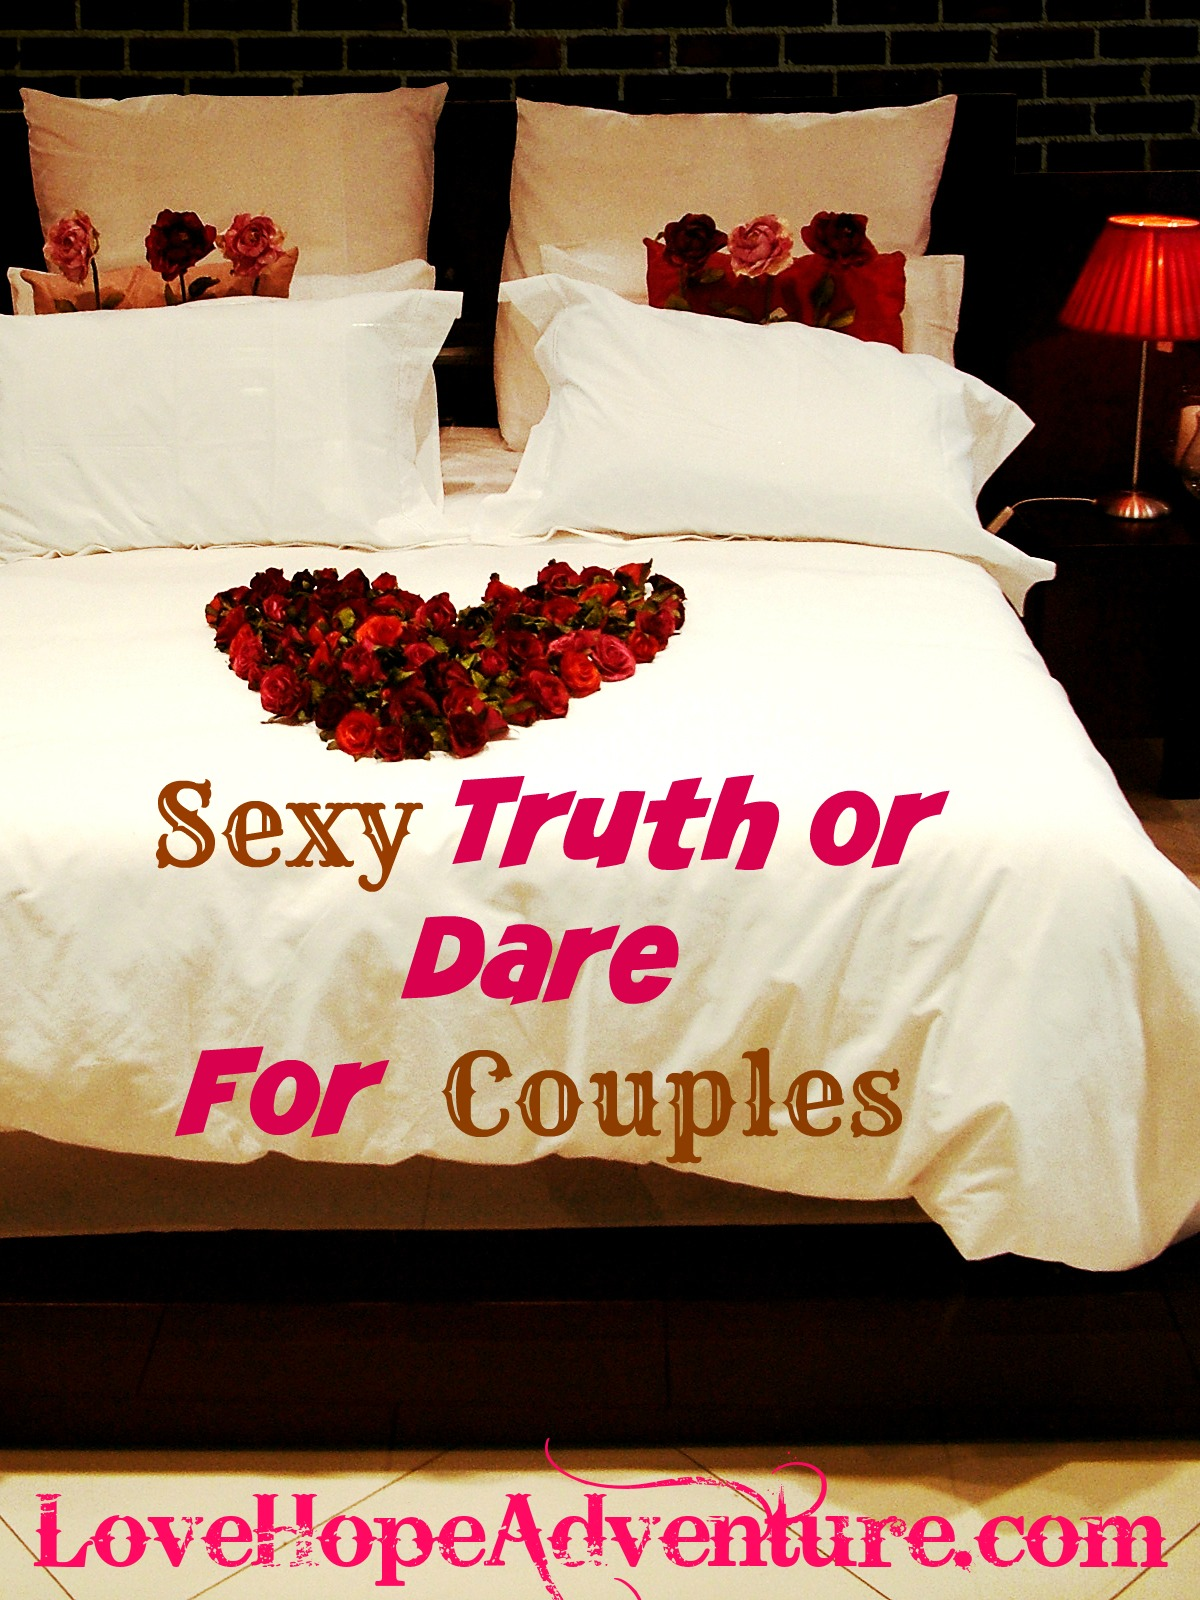 Couples Truth Or Dare Bedroom Game | Love Hope Adventure | Marriage Advice  For Christian Couples